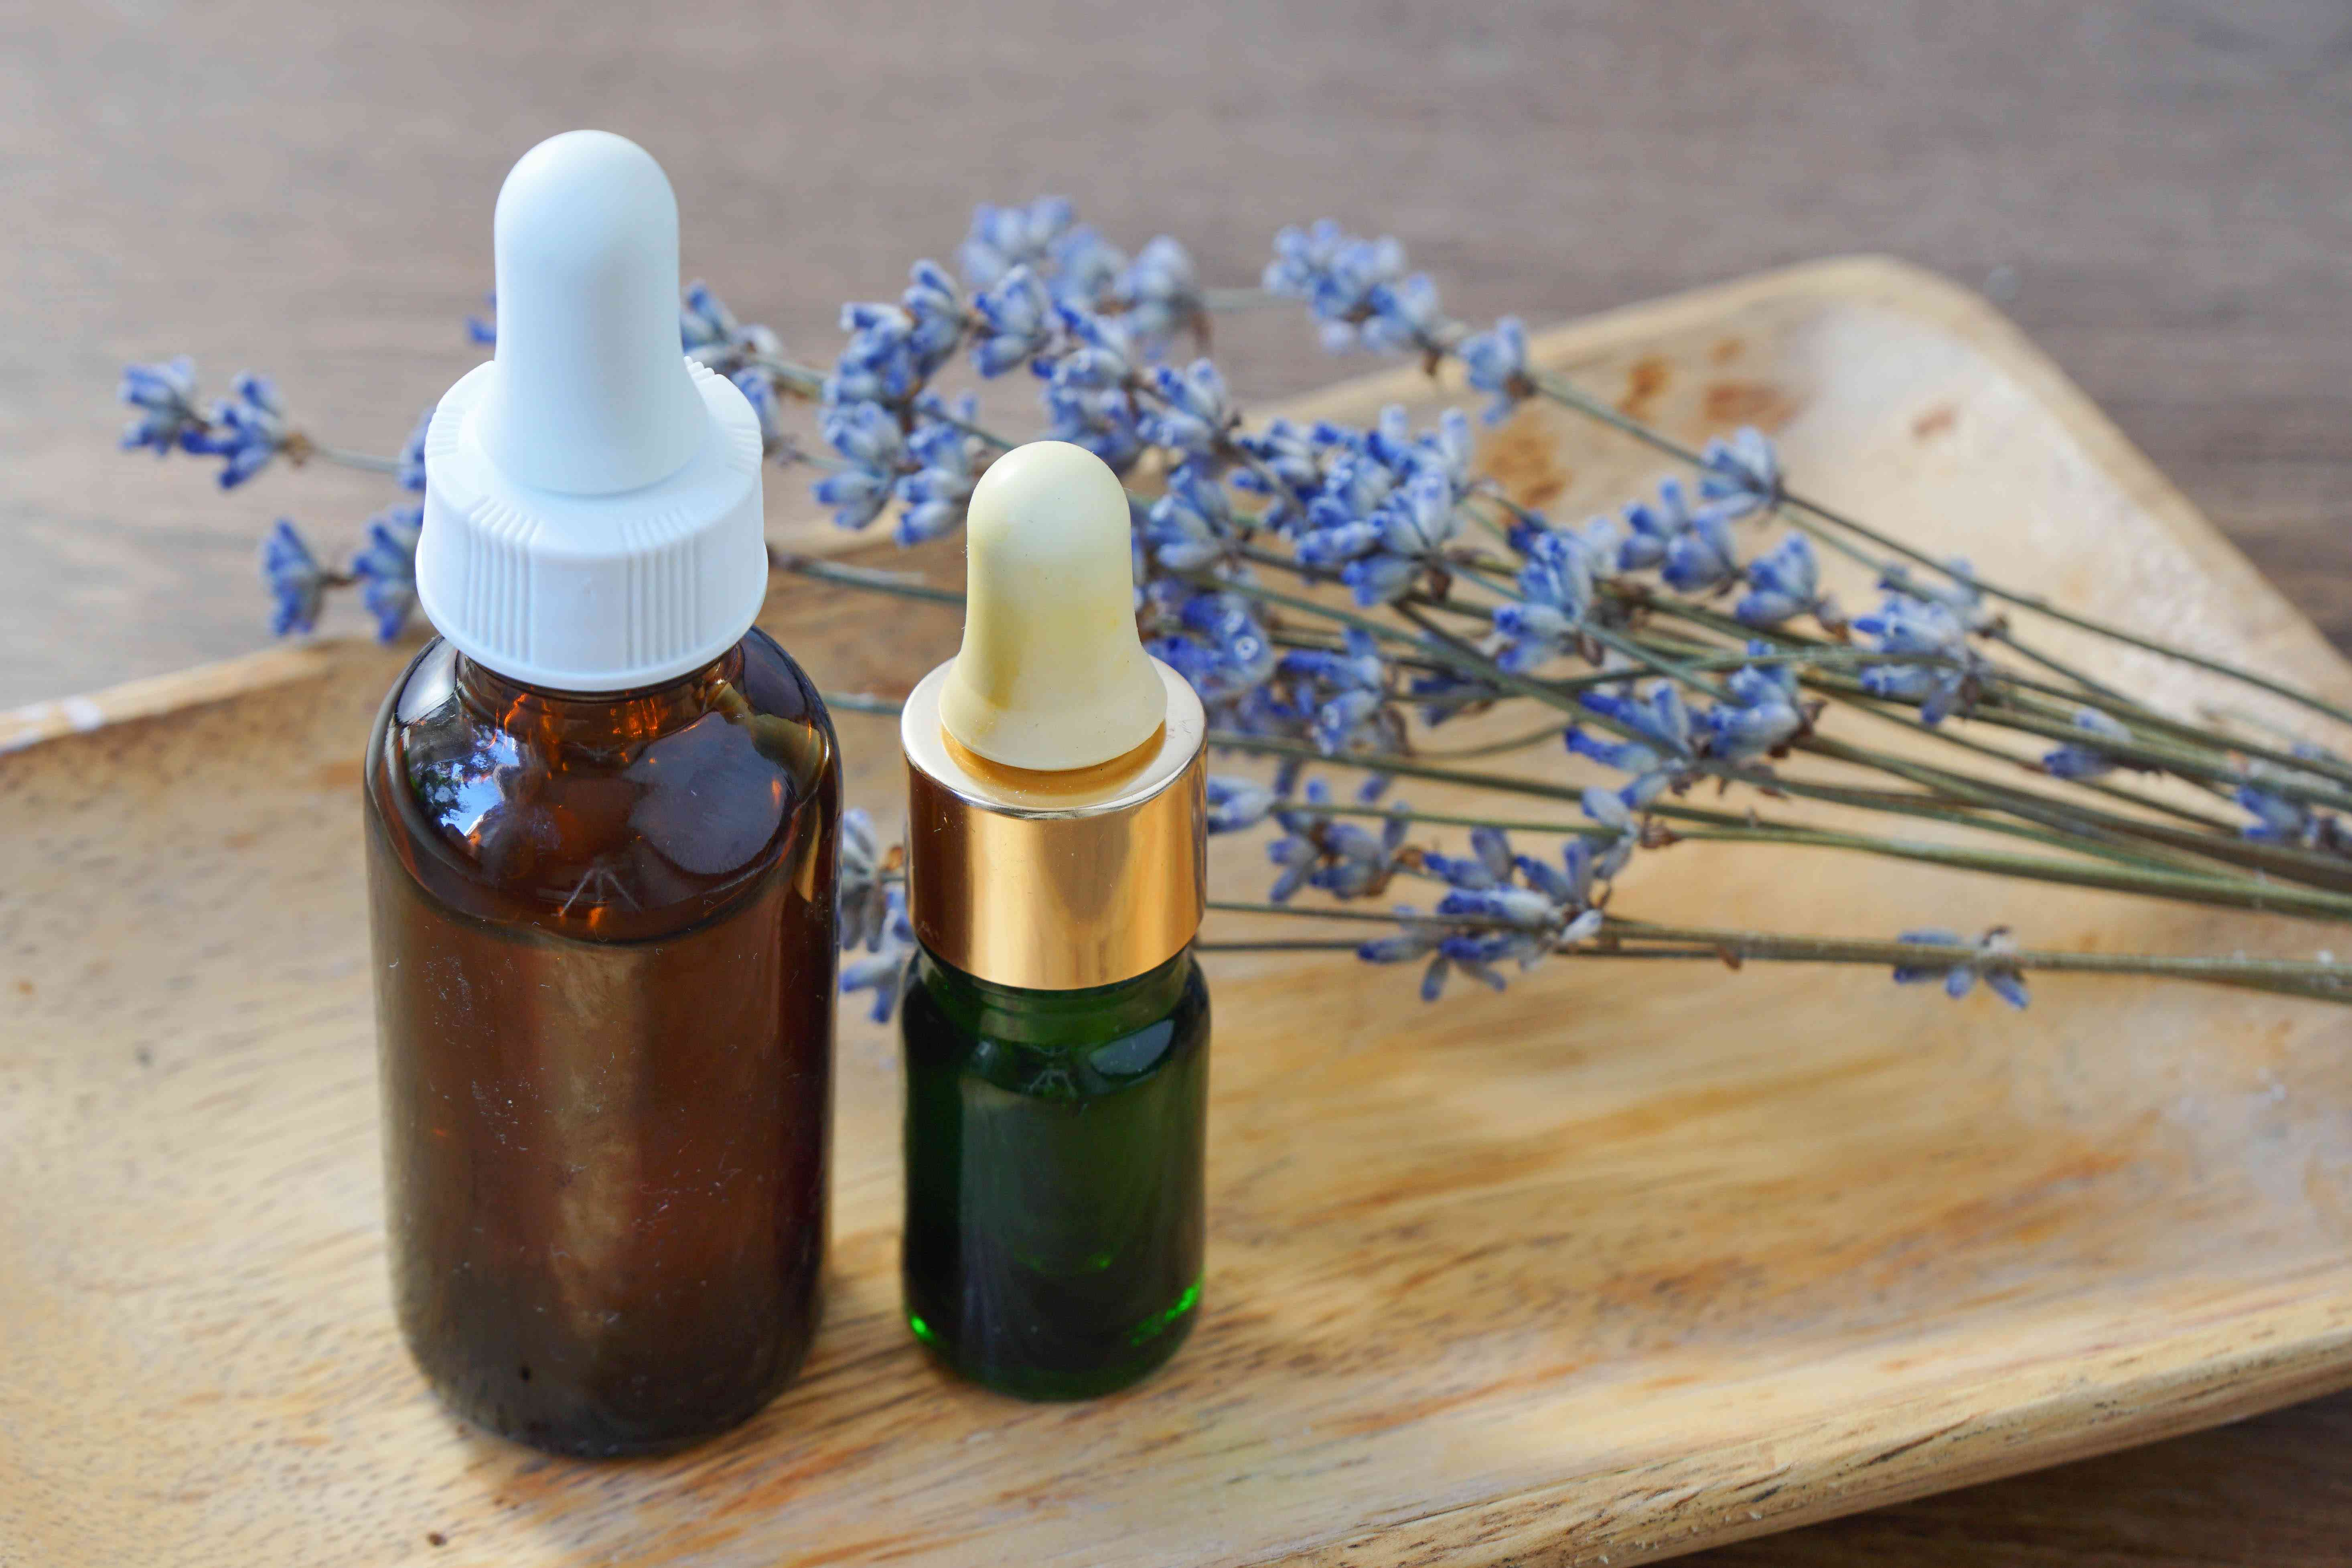 two glass dropper bottles of essential oils next to dried lavender on wooden tray